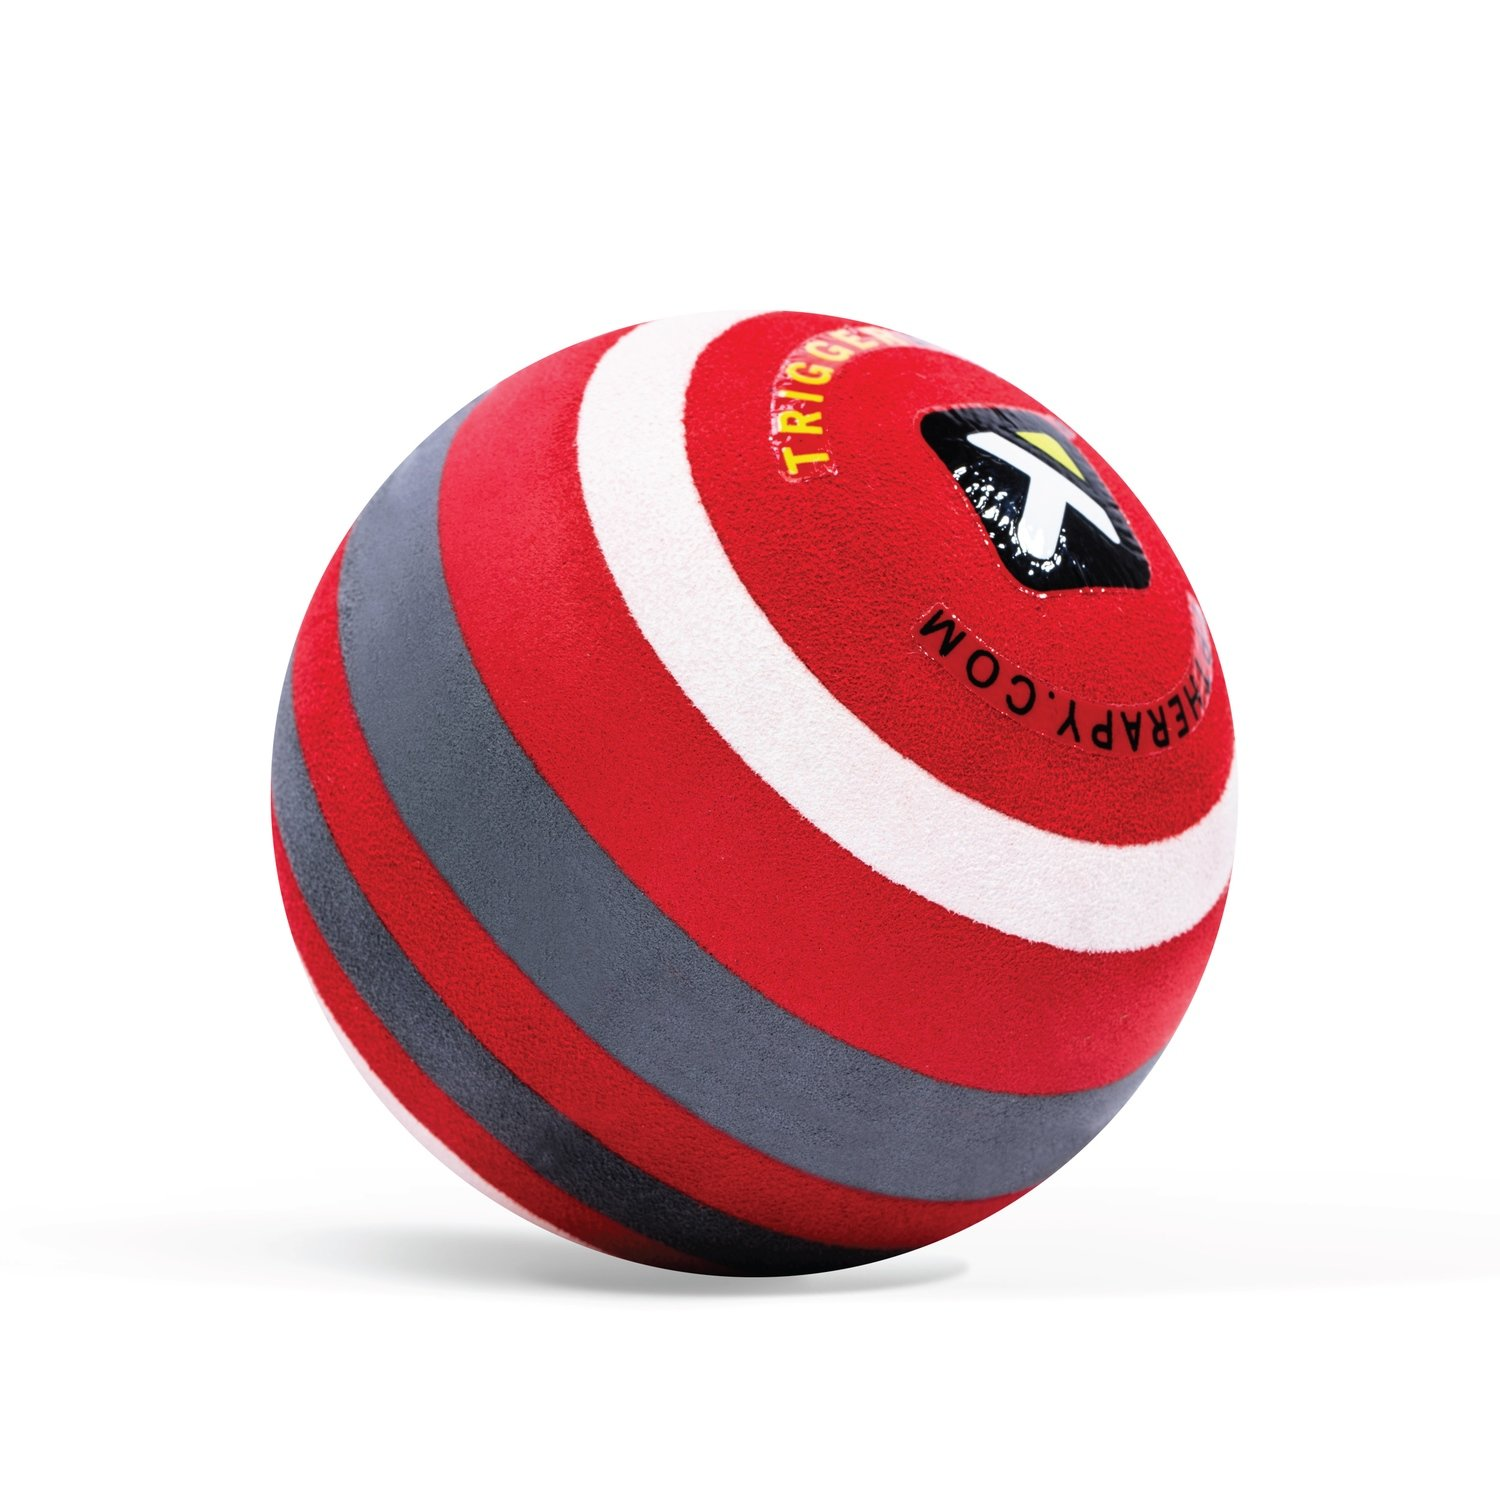 Trigger Point MBX Foam Massage Ball for Deep Tissue Massage